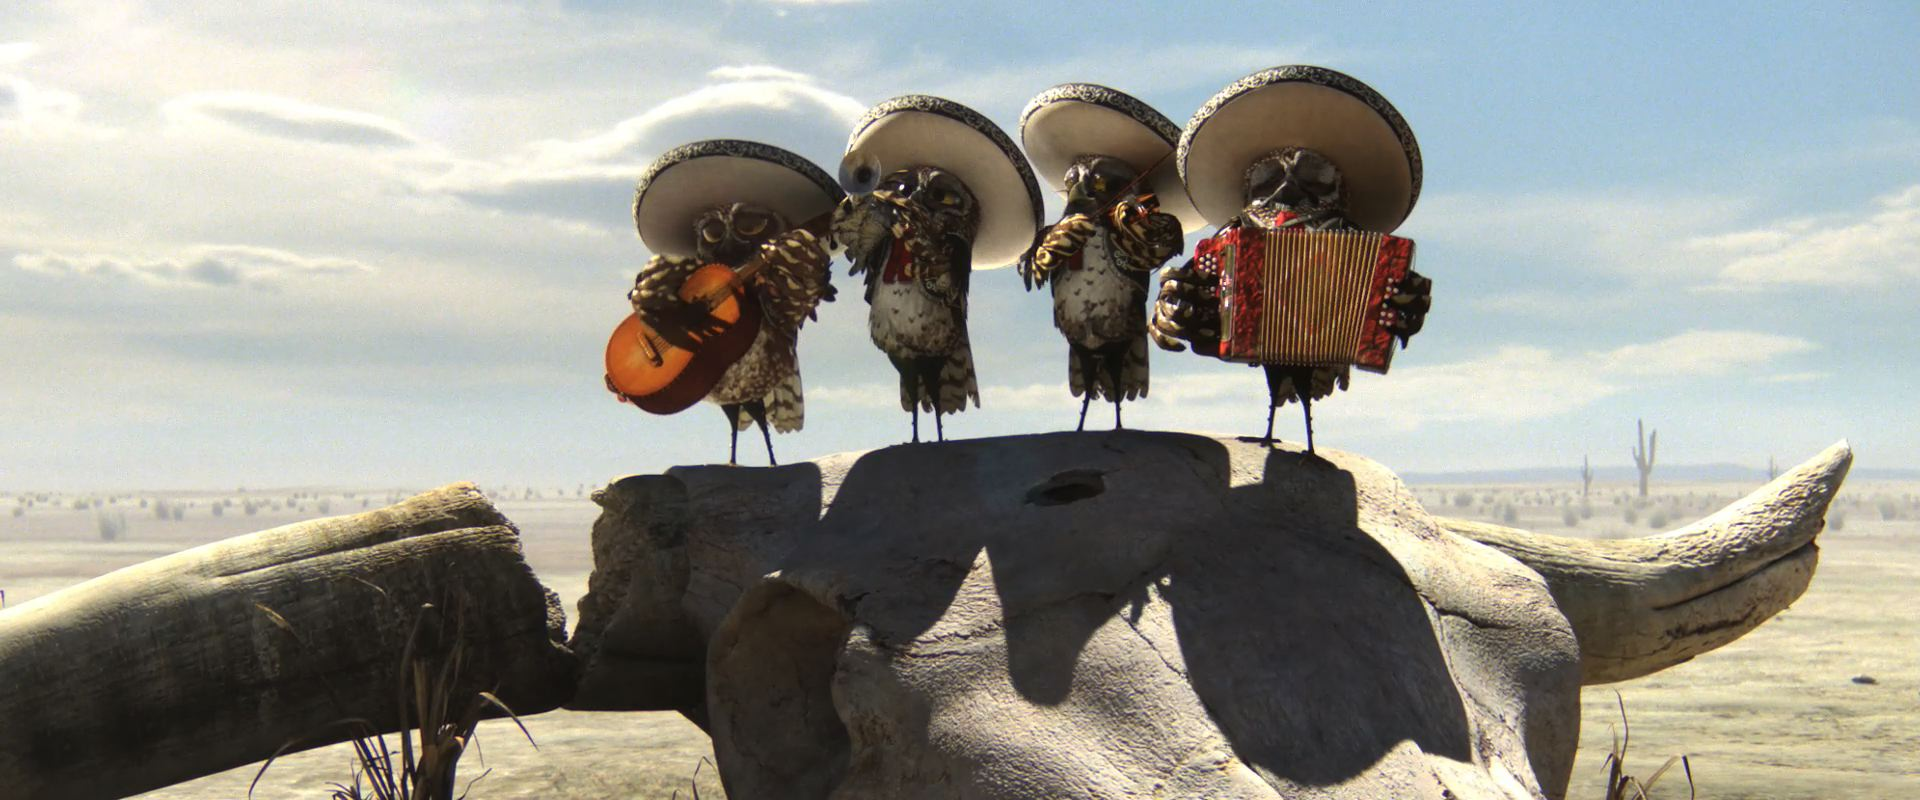 Iphone Wallpapers Hd Free Download Mariachi Owls From Rango Desktop Wallpaper